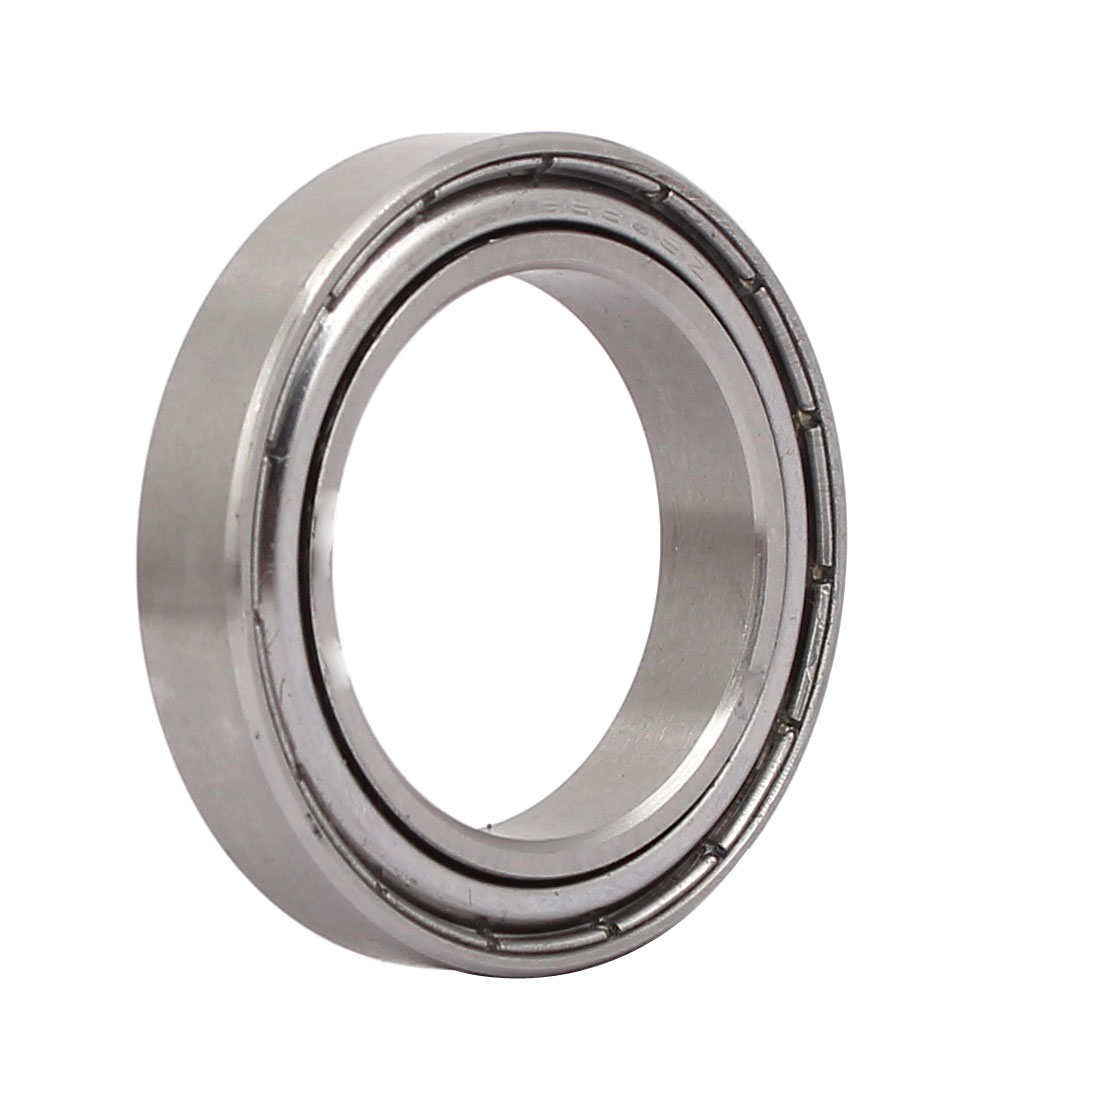 37mmx25mmx7mm 6805 Stainless Steel Shielded Deep Groove Radial Ball Bearing